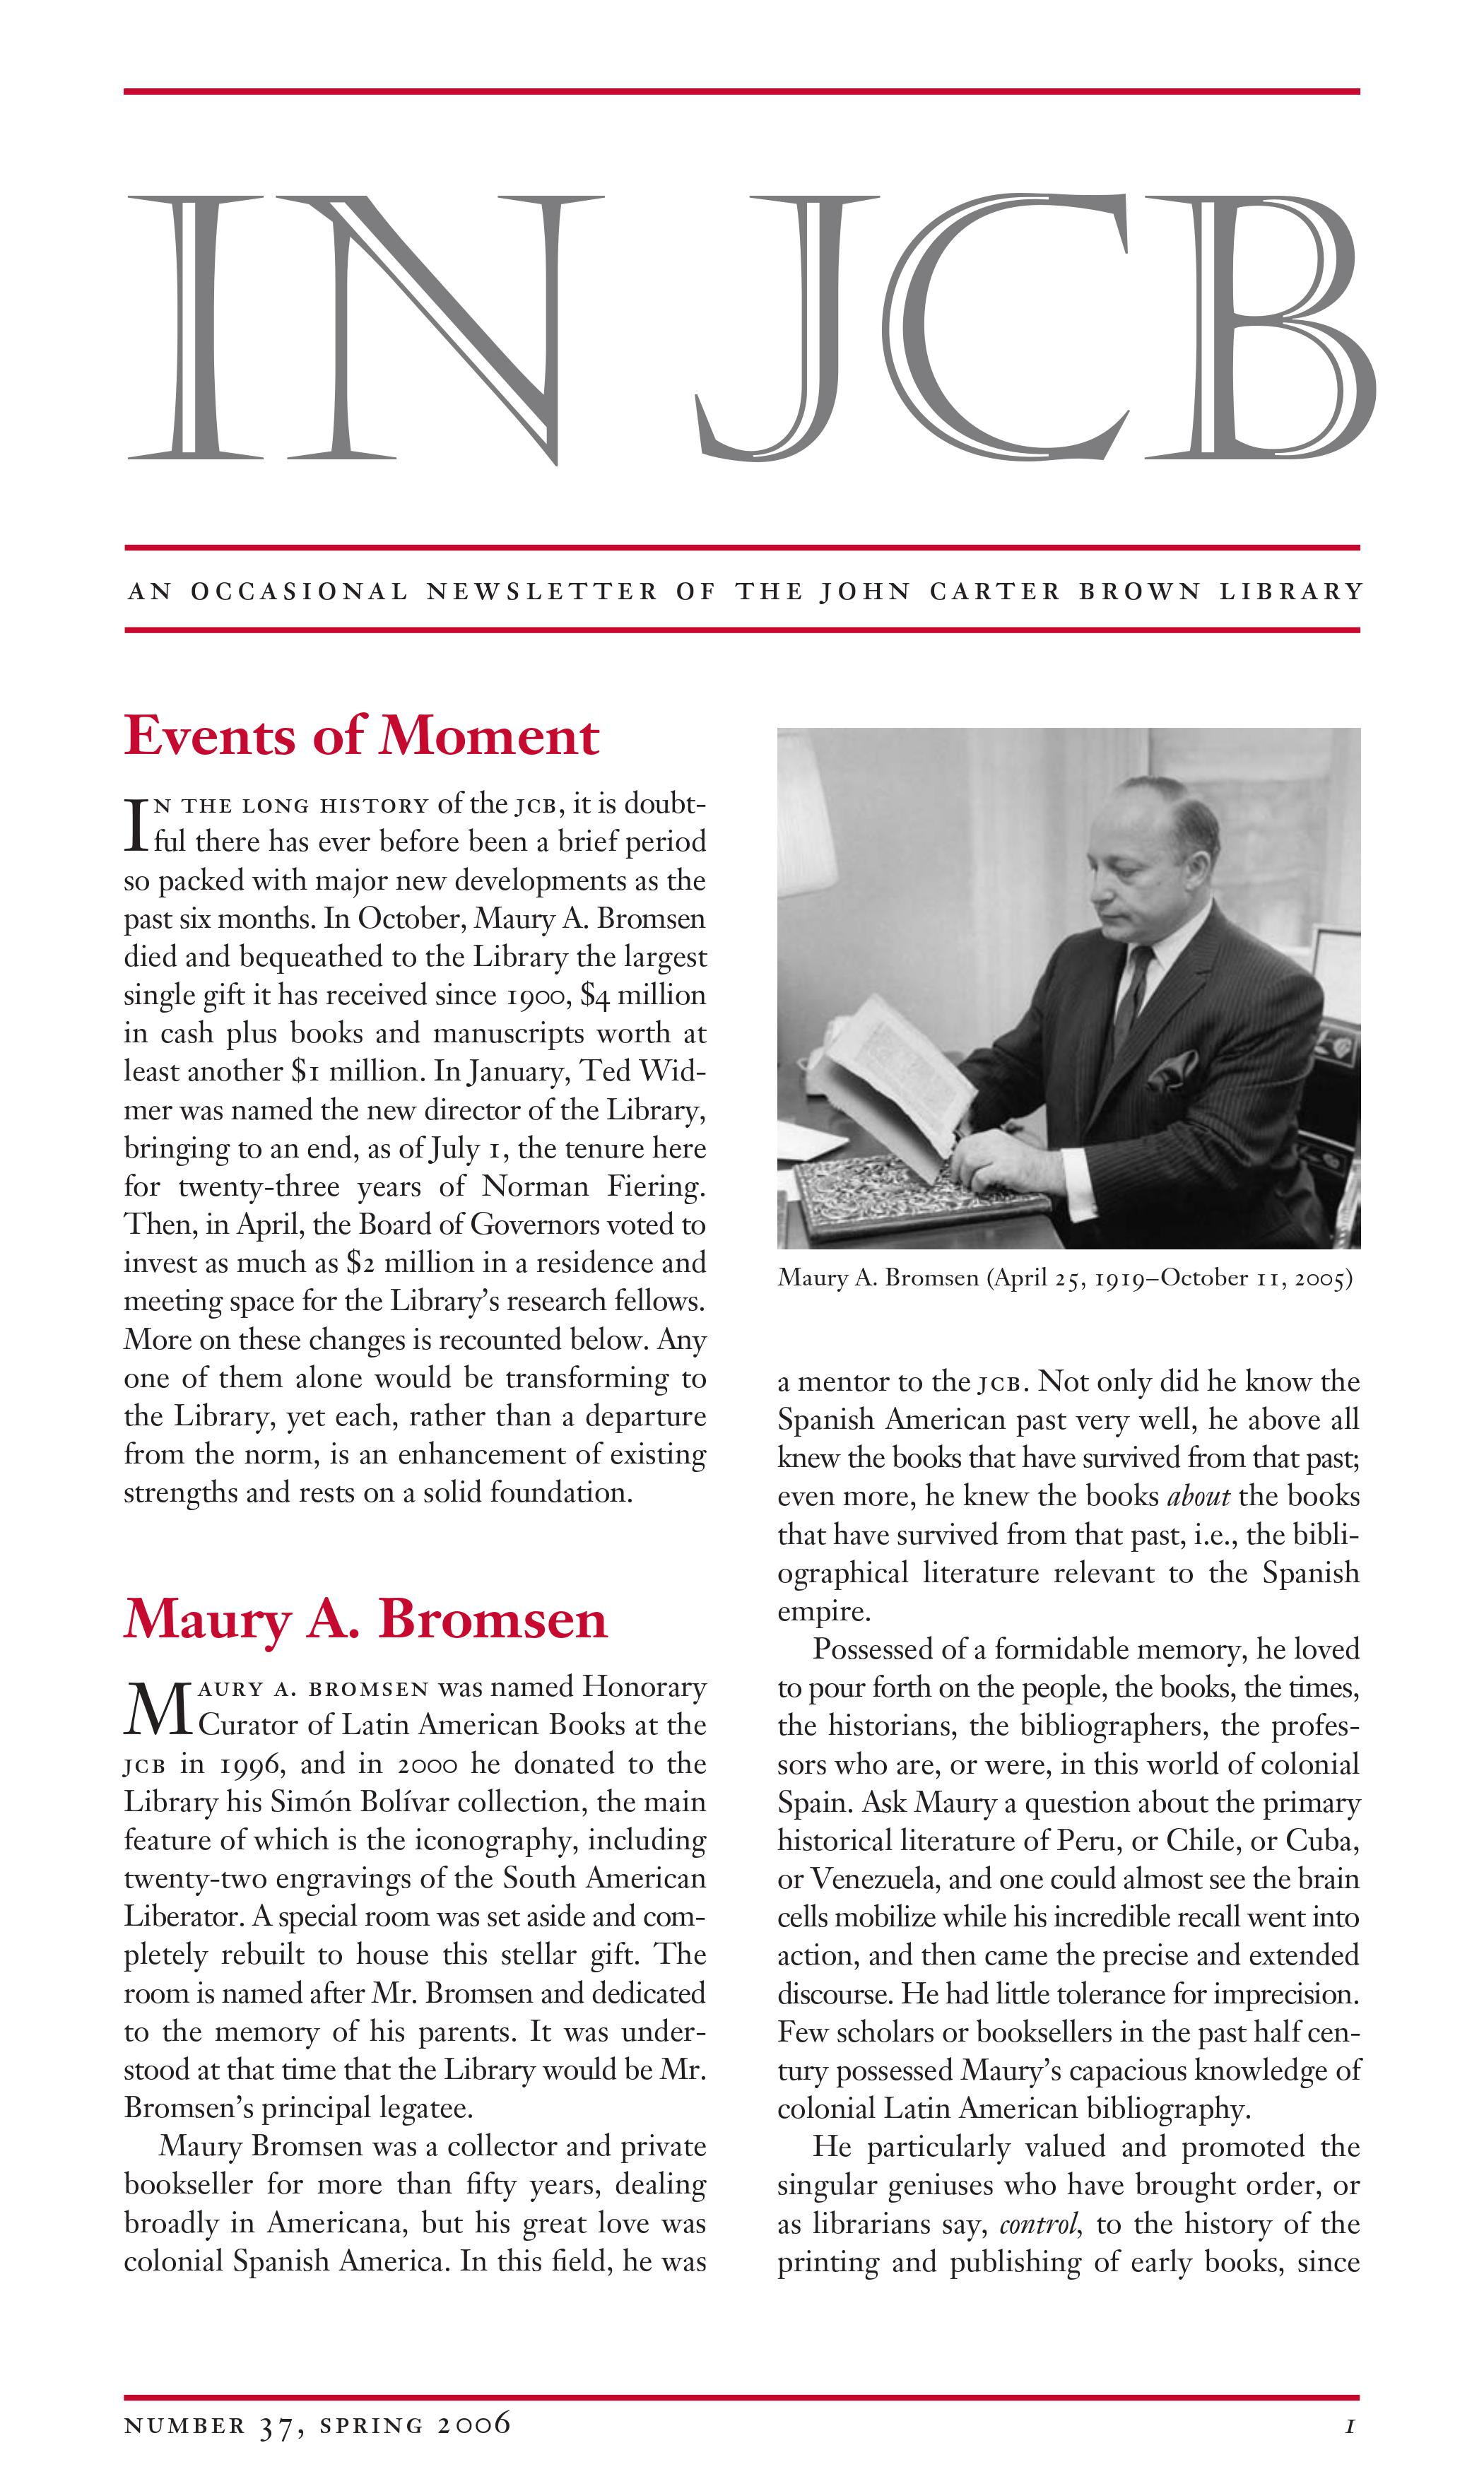 text of a newsletter and an image of Maury A. Bromsen holding and viewing a book